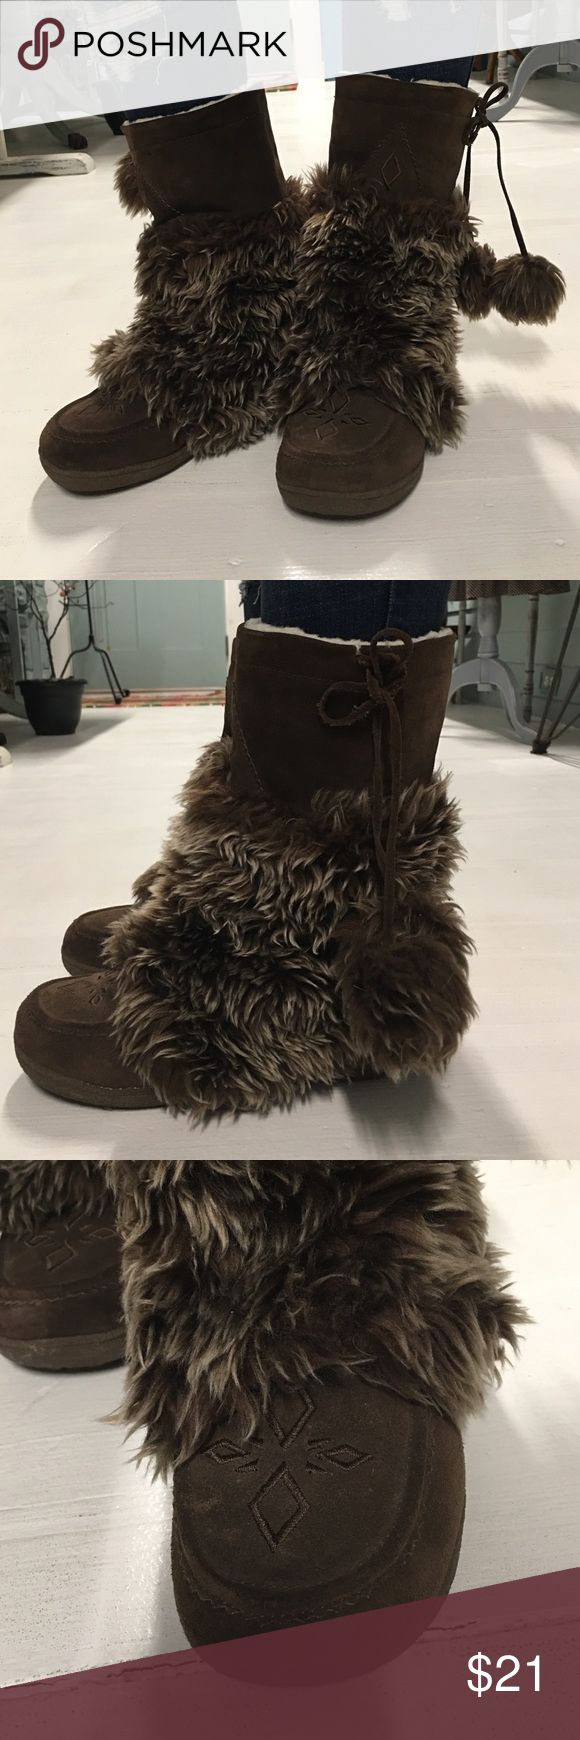 Eskimo boots , super cute size 9 Super cute something else by sketchers boots, full full with tie side and fur tassels , size 9 and worn only a few times , in great condition , color is brown , very warm Skechers Shoes Winter & Rain Boots